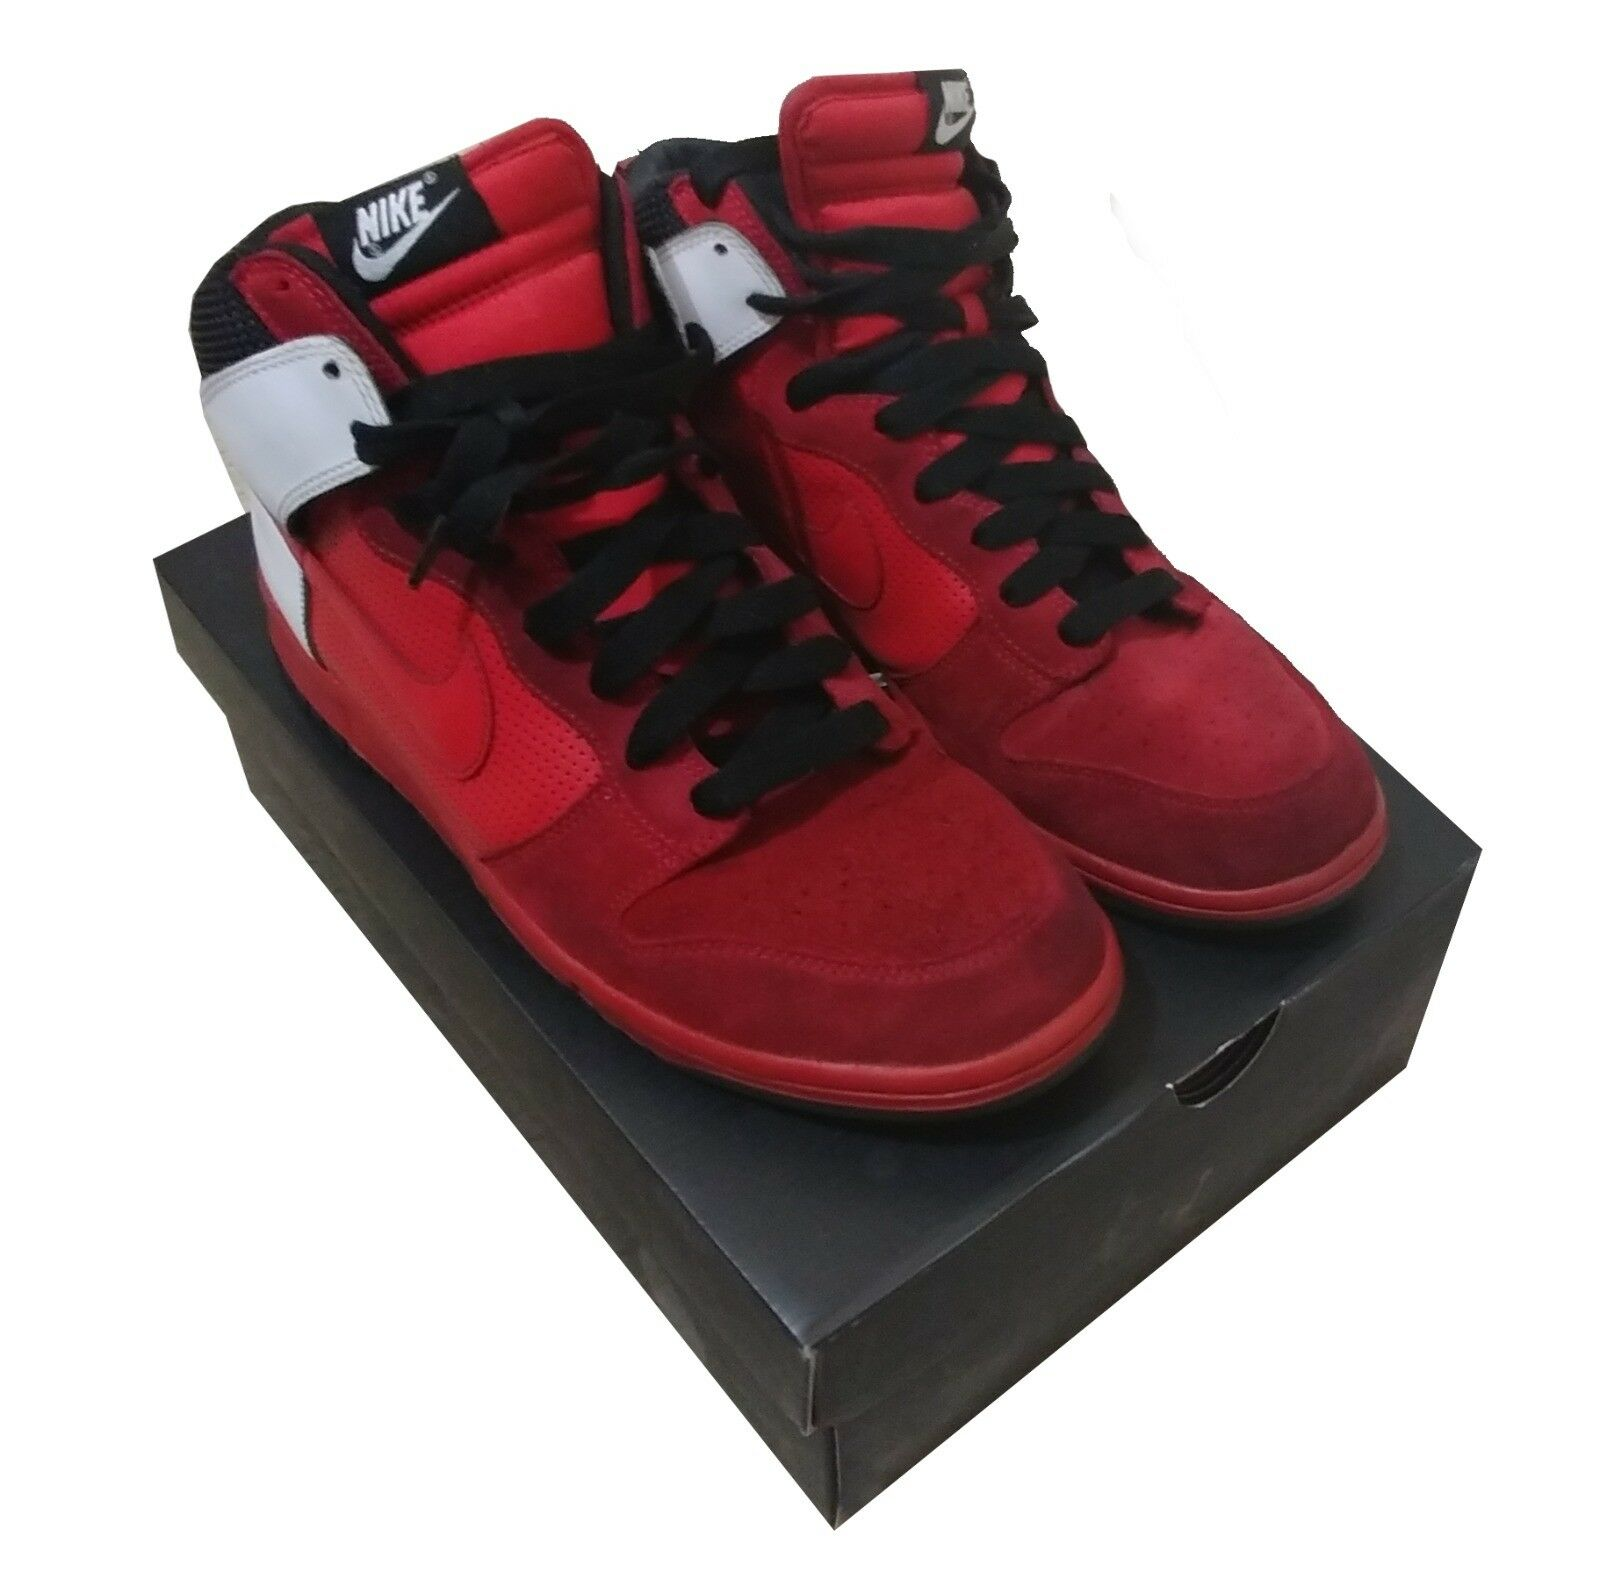 Men's Nike Dunks High Tops - Red and White (Size 11)